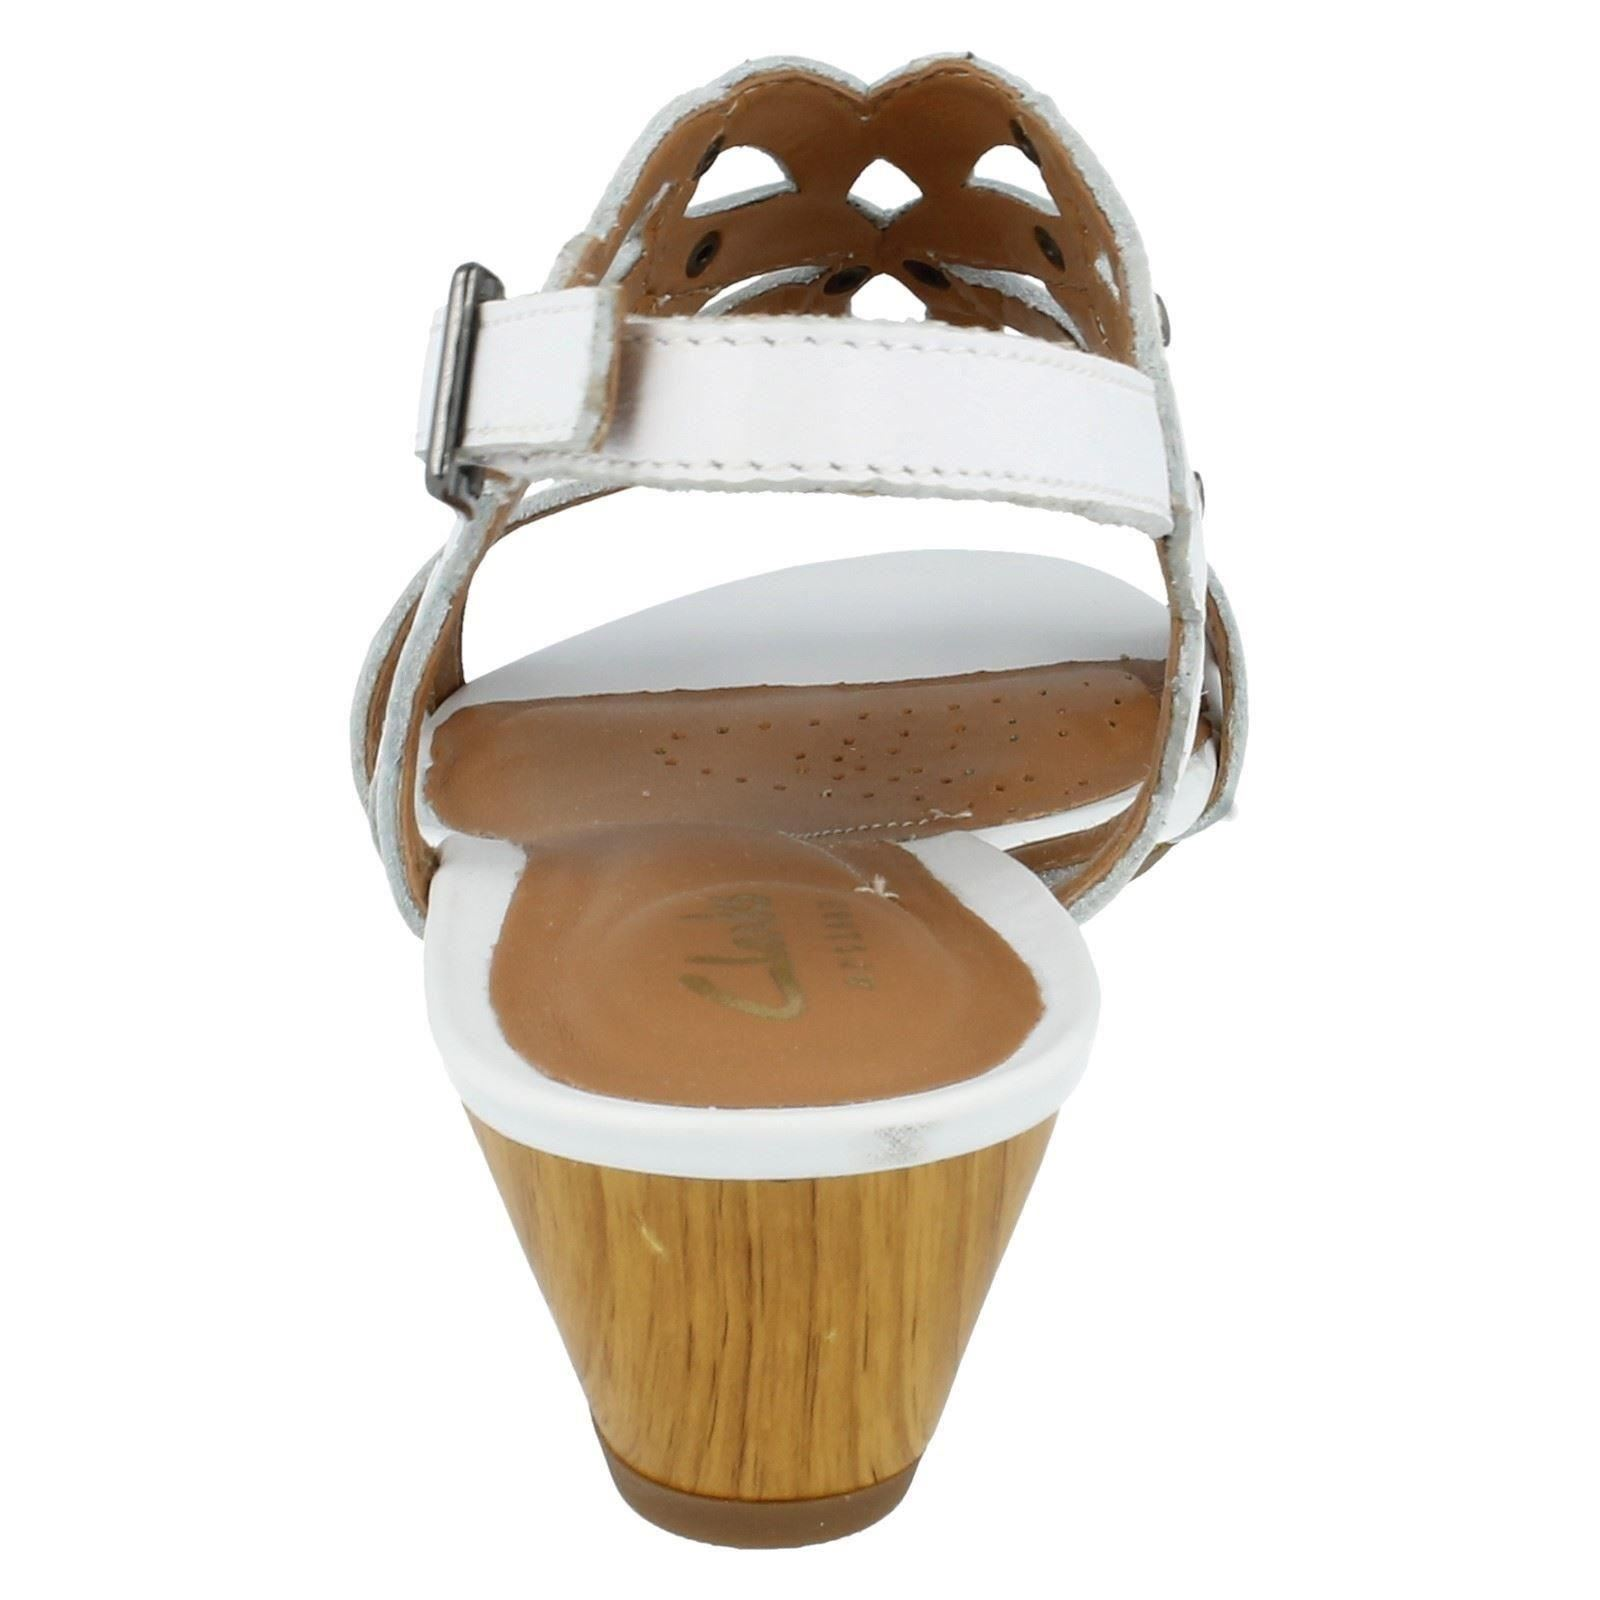 28d7aea0d86 Clarks Womens Playful Tunes Leather Sandals in White 28c08 8 D. About this  product. Picture 1 of 9  Picture 2 of 9  Picture 3 of 9 ...